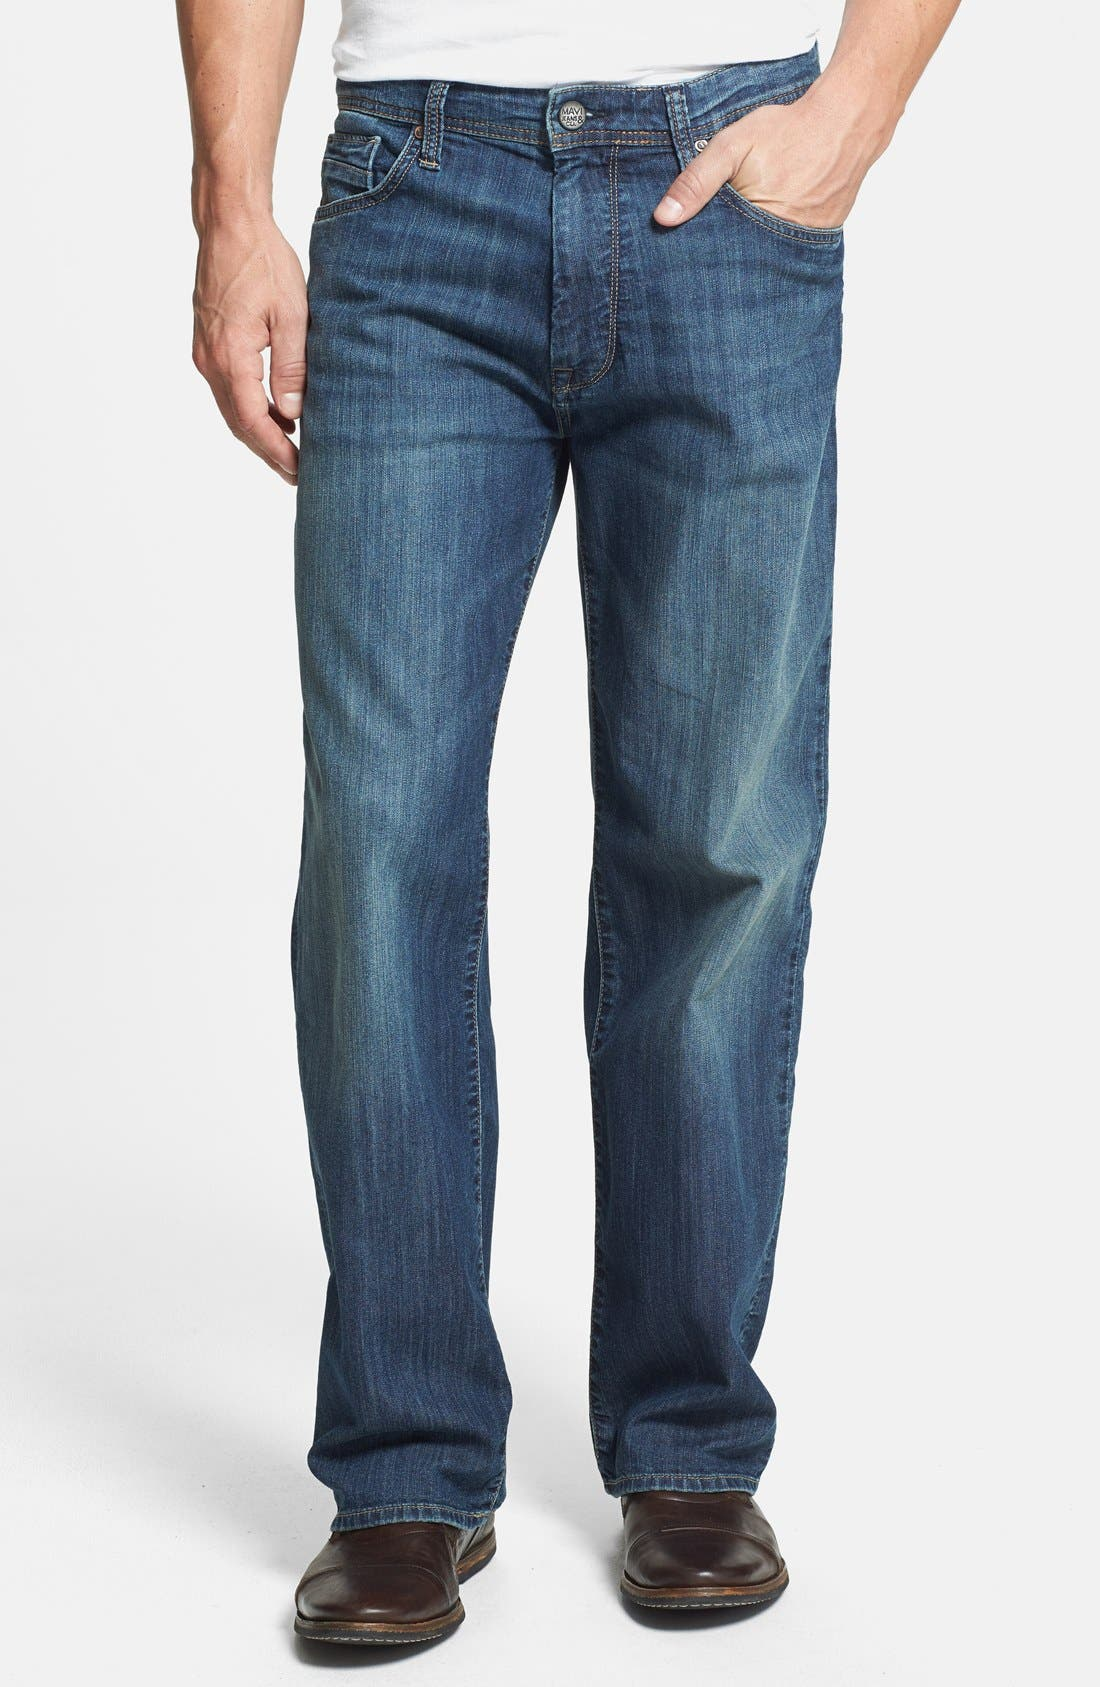 Alternate Image 1 Selected - Mavi Jeans 'Max' Relaxed Fit Jeans (Mid Railtown) (Online Only)